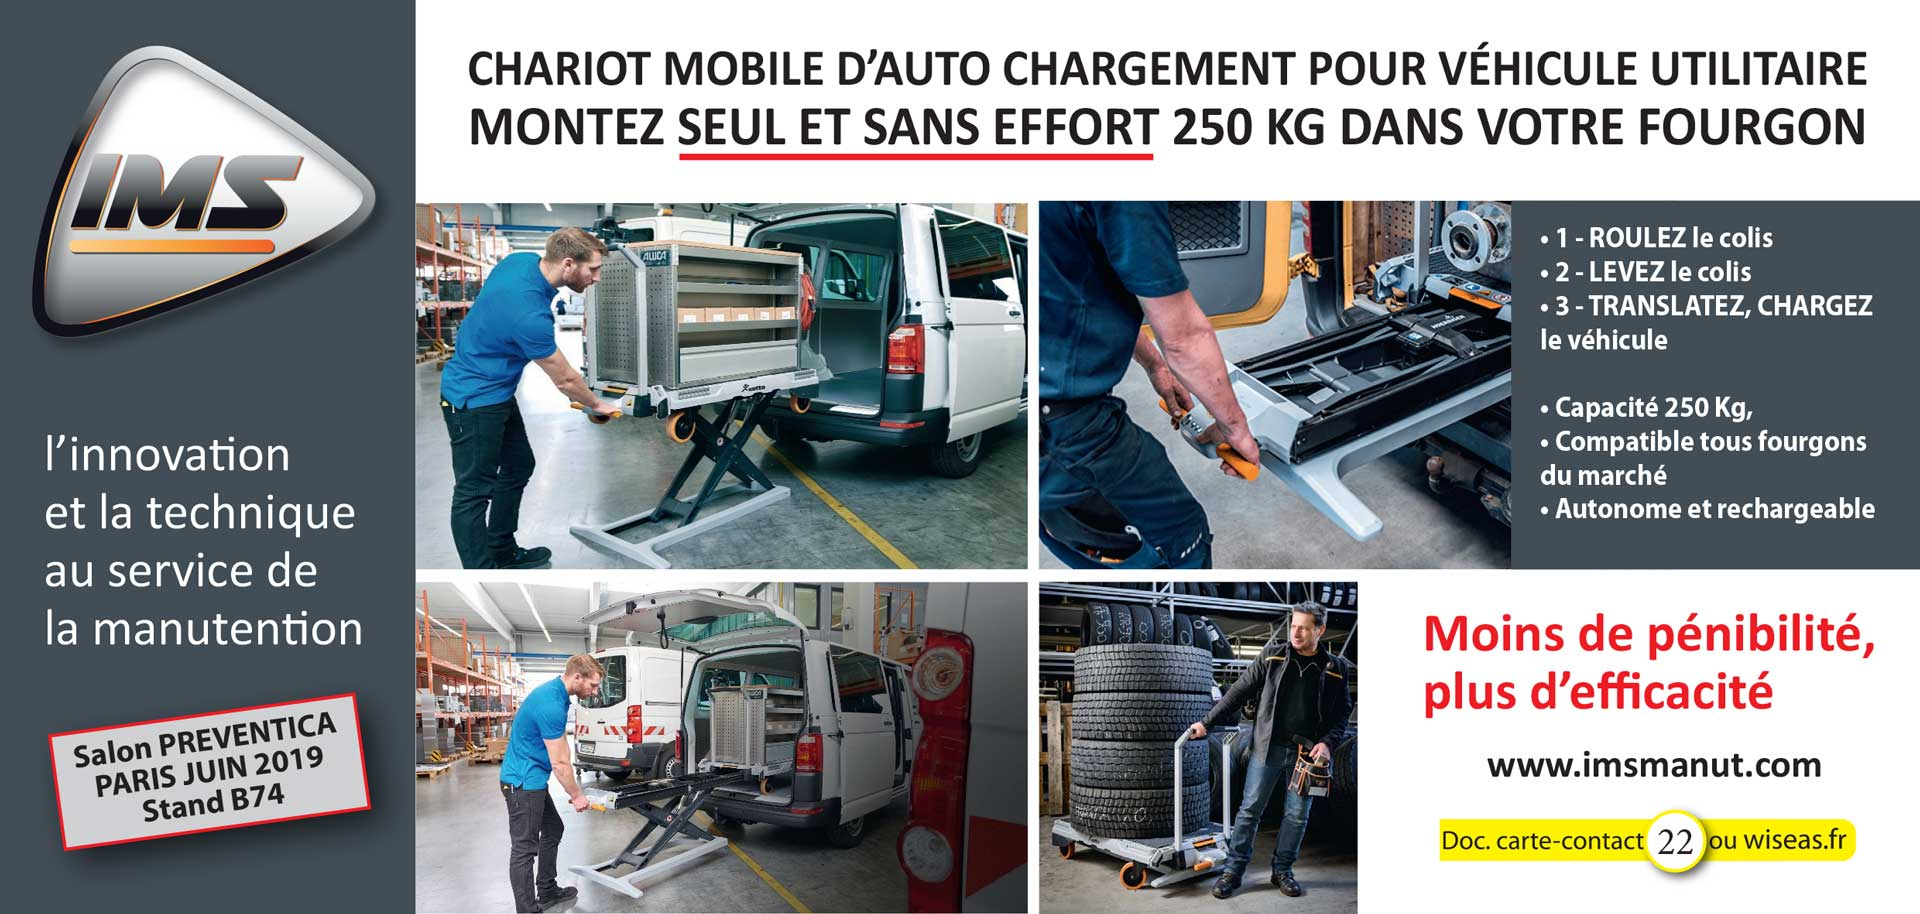 Chariot auto-chargement